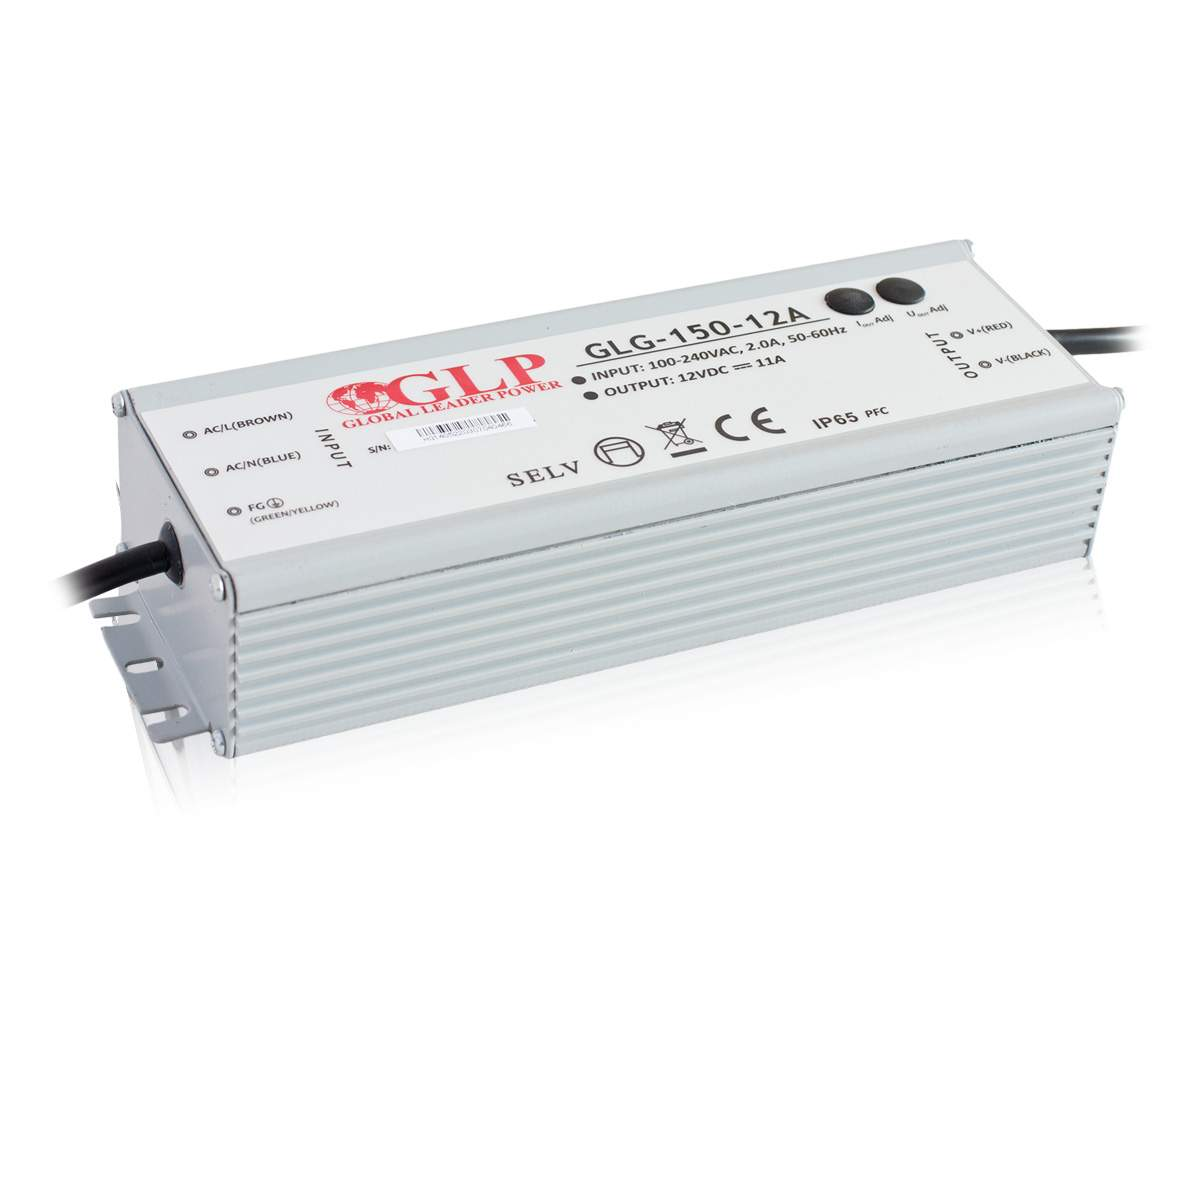 Power supply unit GLP POWER 12V DC GLG-150-12 230V 150W IP65